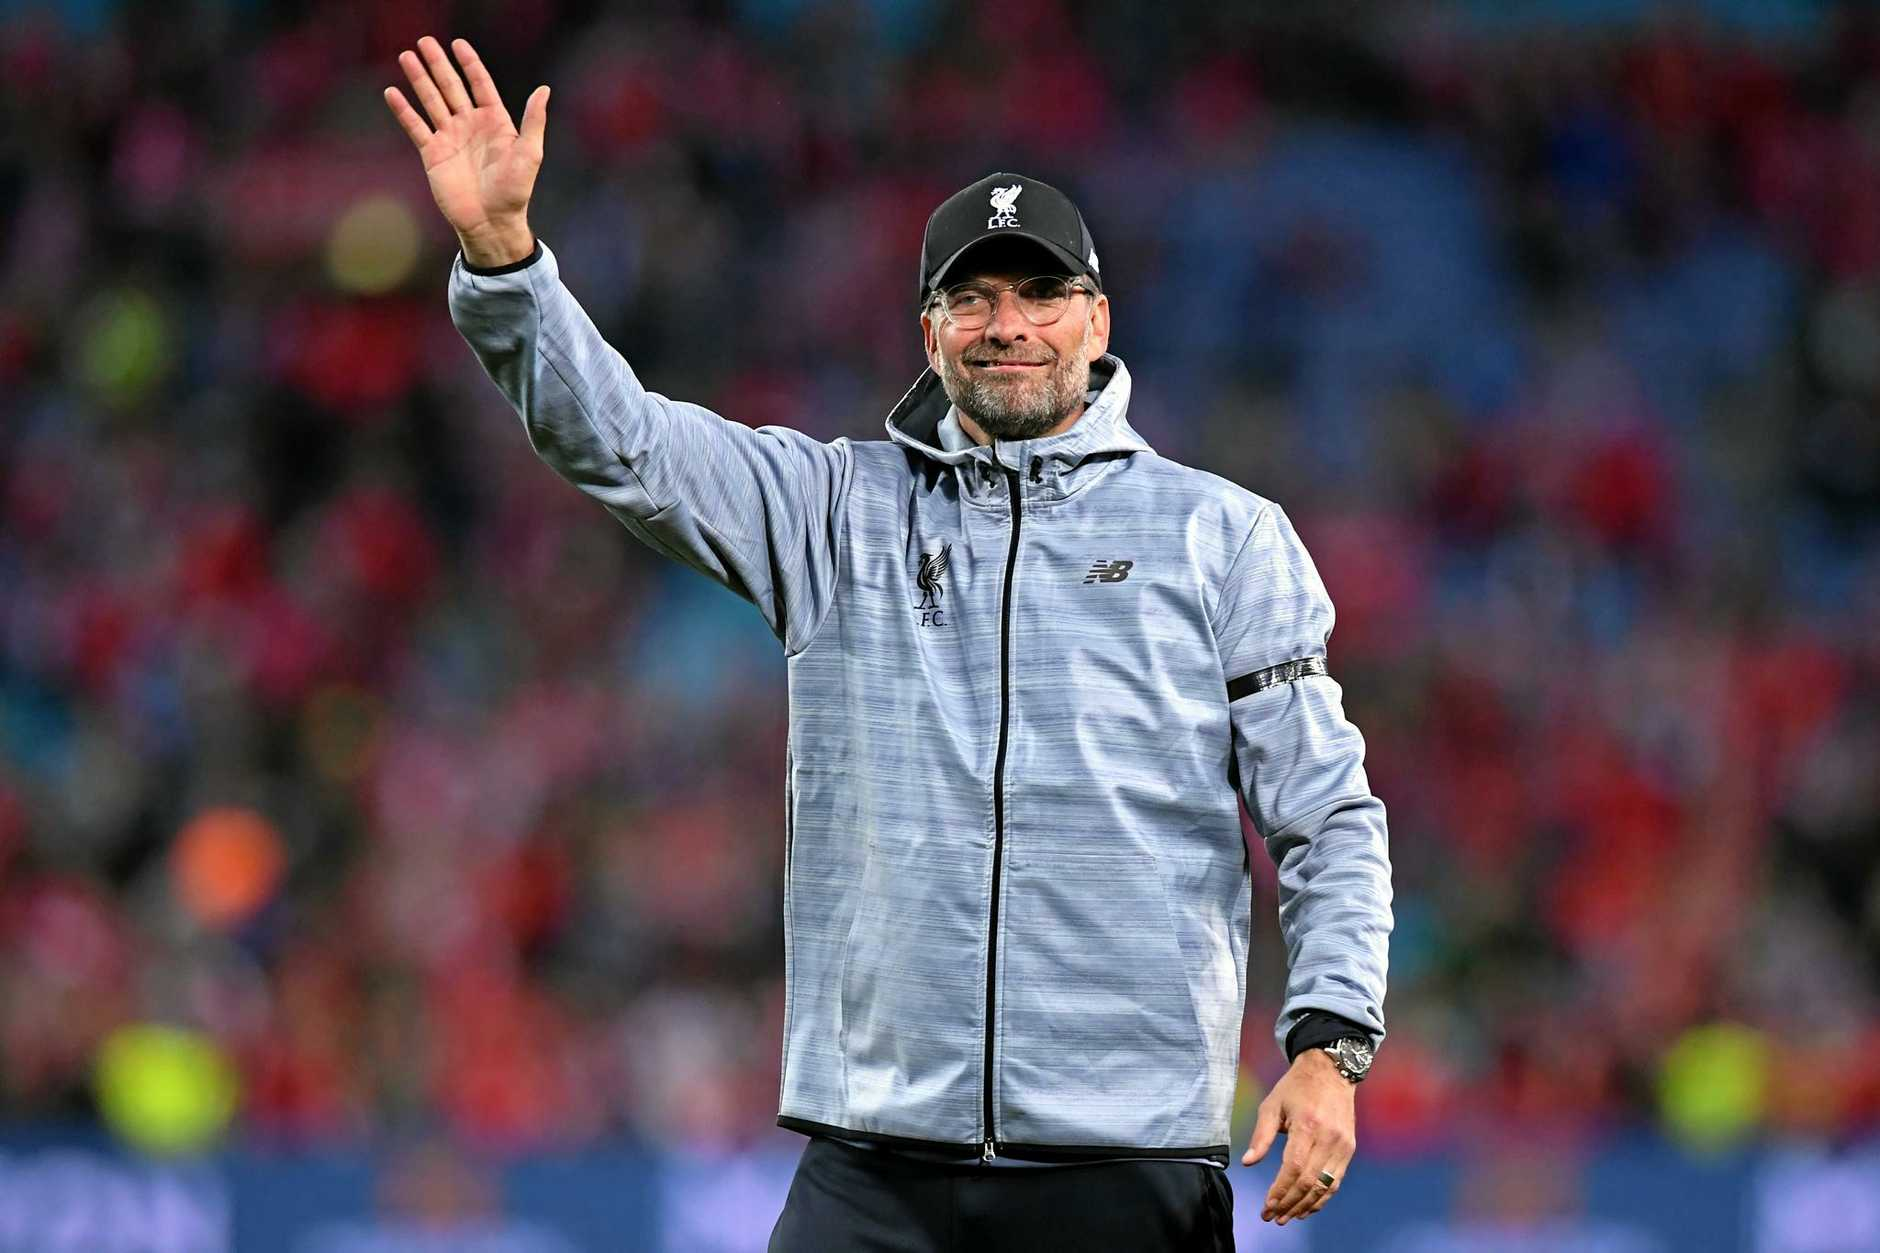 Liverpool coach Jurgen Klopp waves to the crowd following the exhibition match between Sydney FC and Liverpool FC at ANZ Stadium in Sydney on Wednesday, May 24, 2017. (AAP Image/Paul Miller) NO ARCHIVING, EDITORIAL USE ONLY